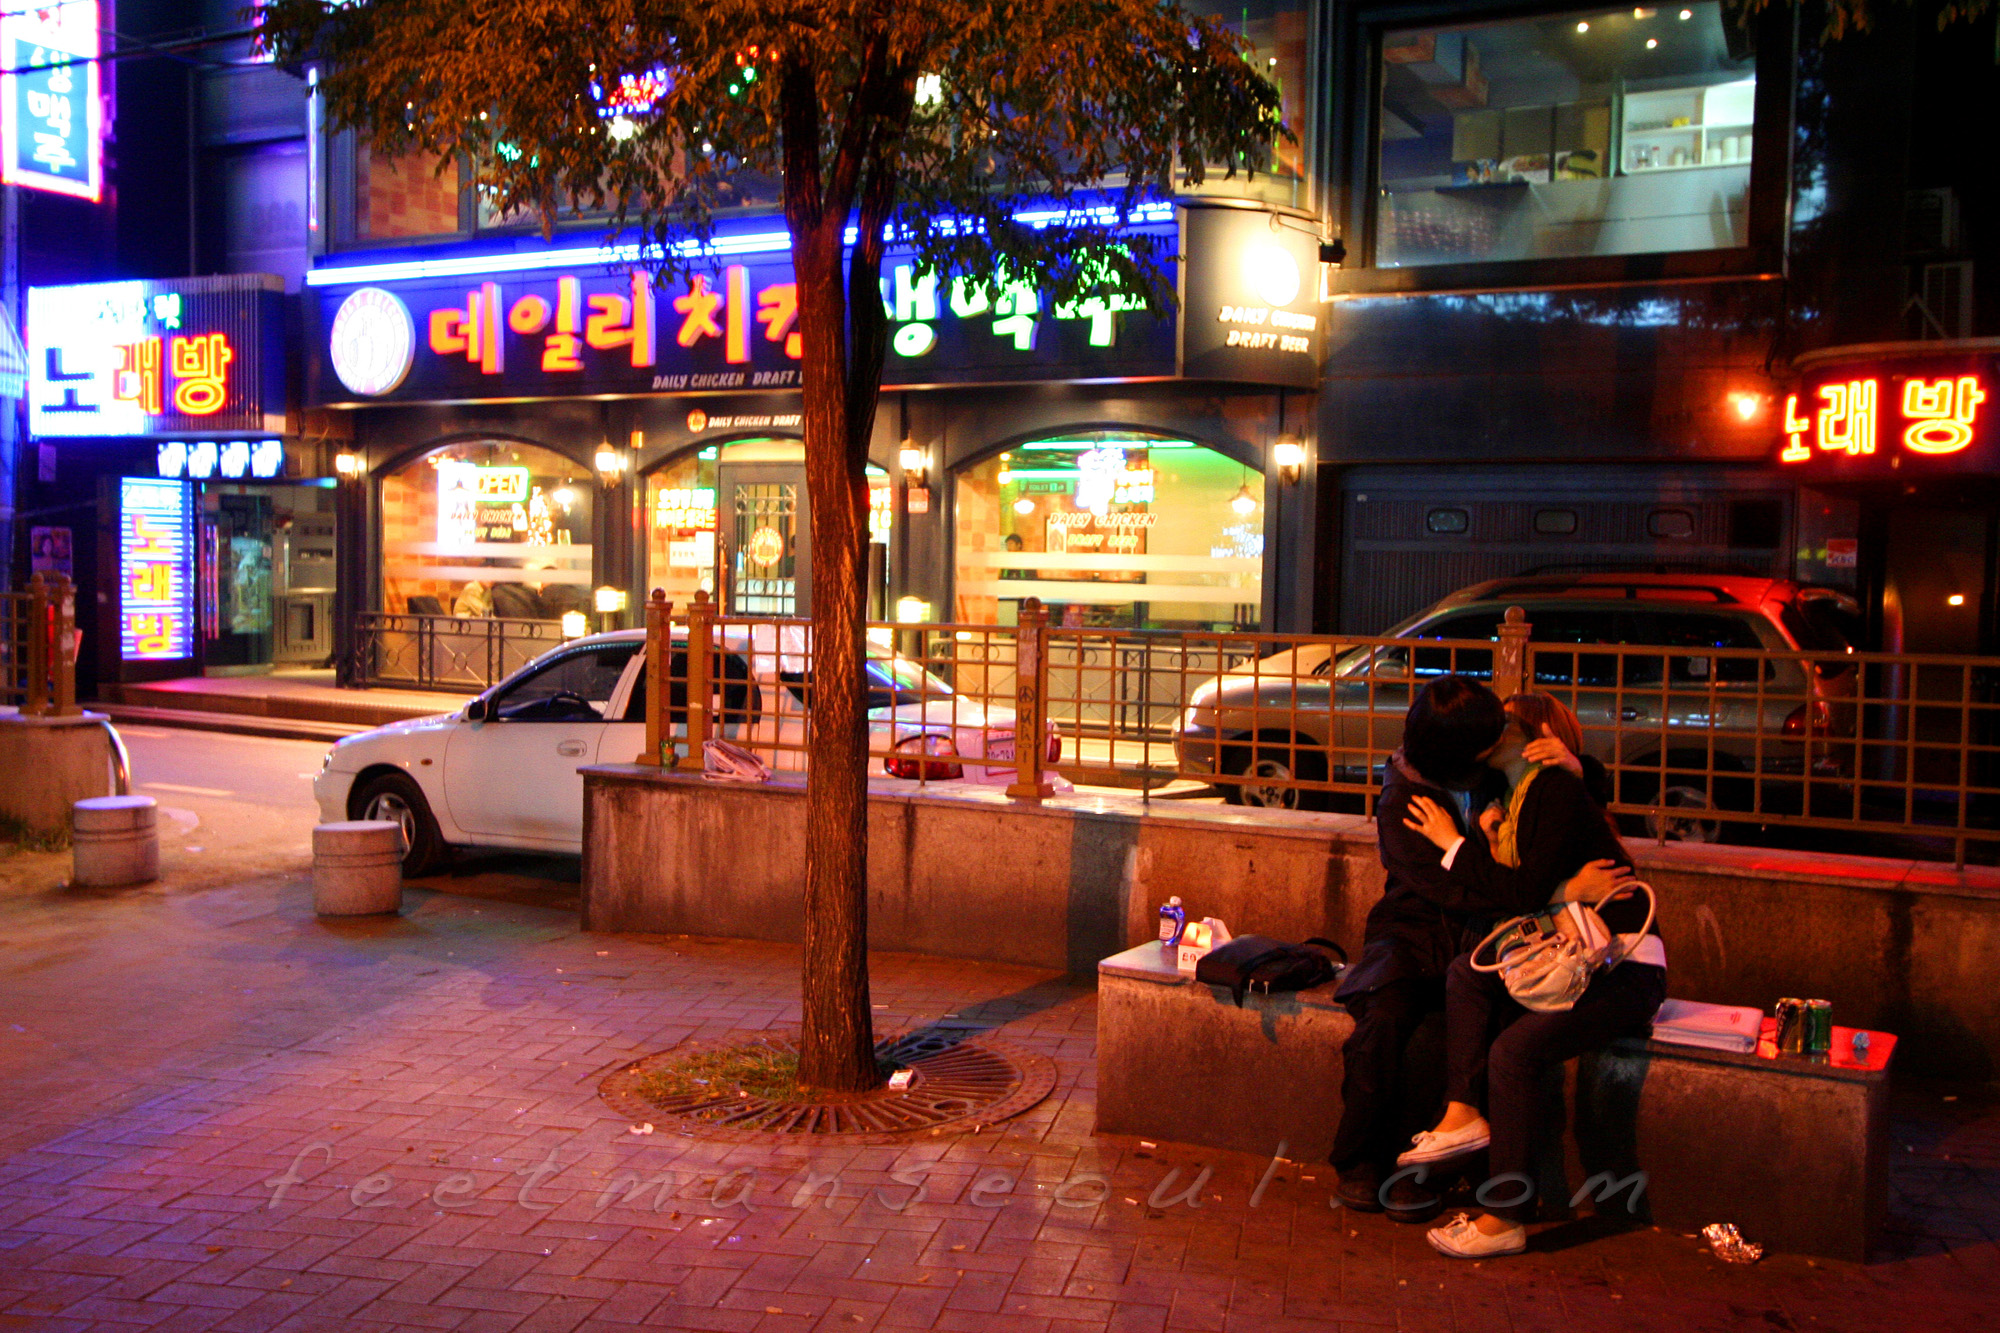 Seoul is also dark romance in dark places...